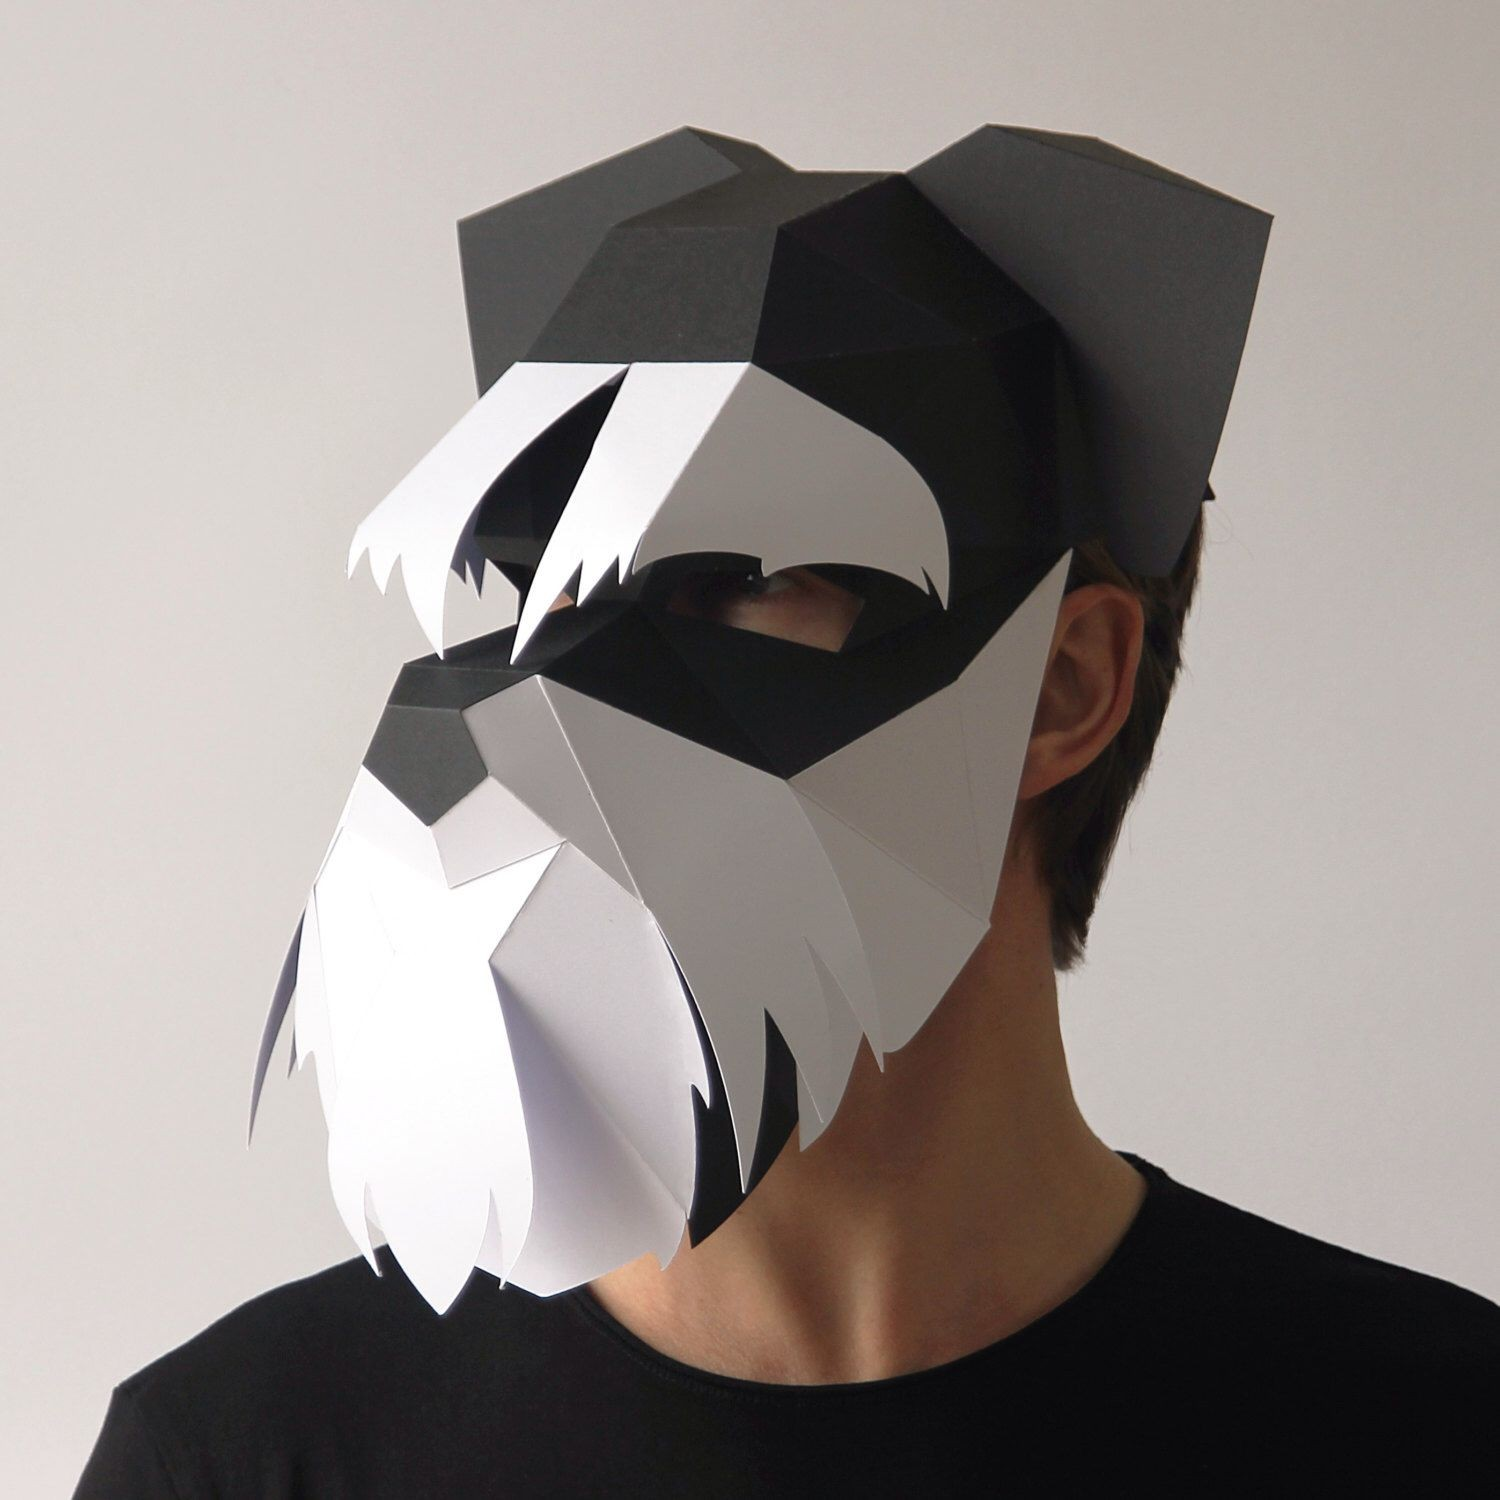 Papercraft Masks Dog Mask Build Your Own Schnauzer 3d Dog Mask From Card Using